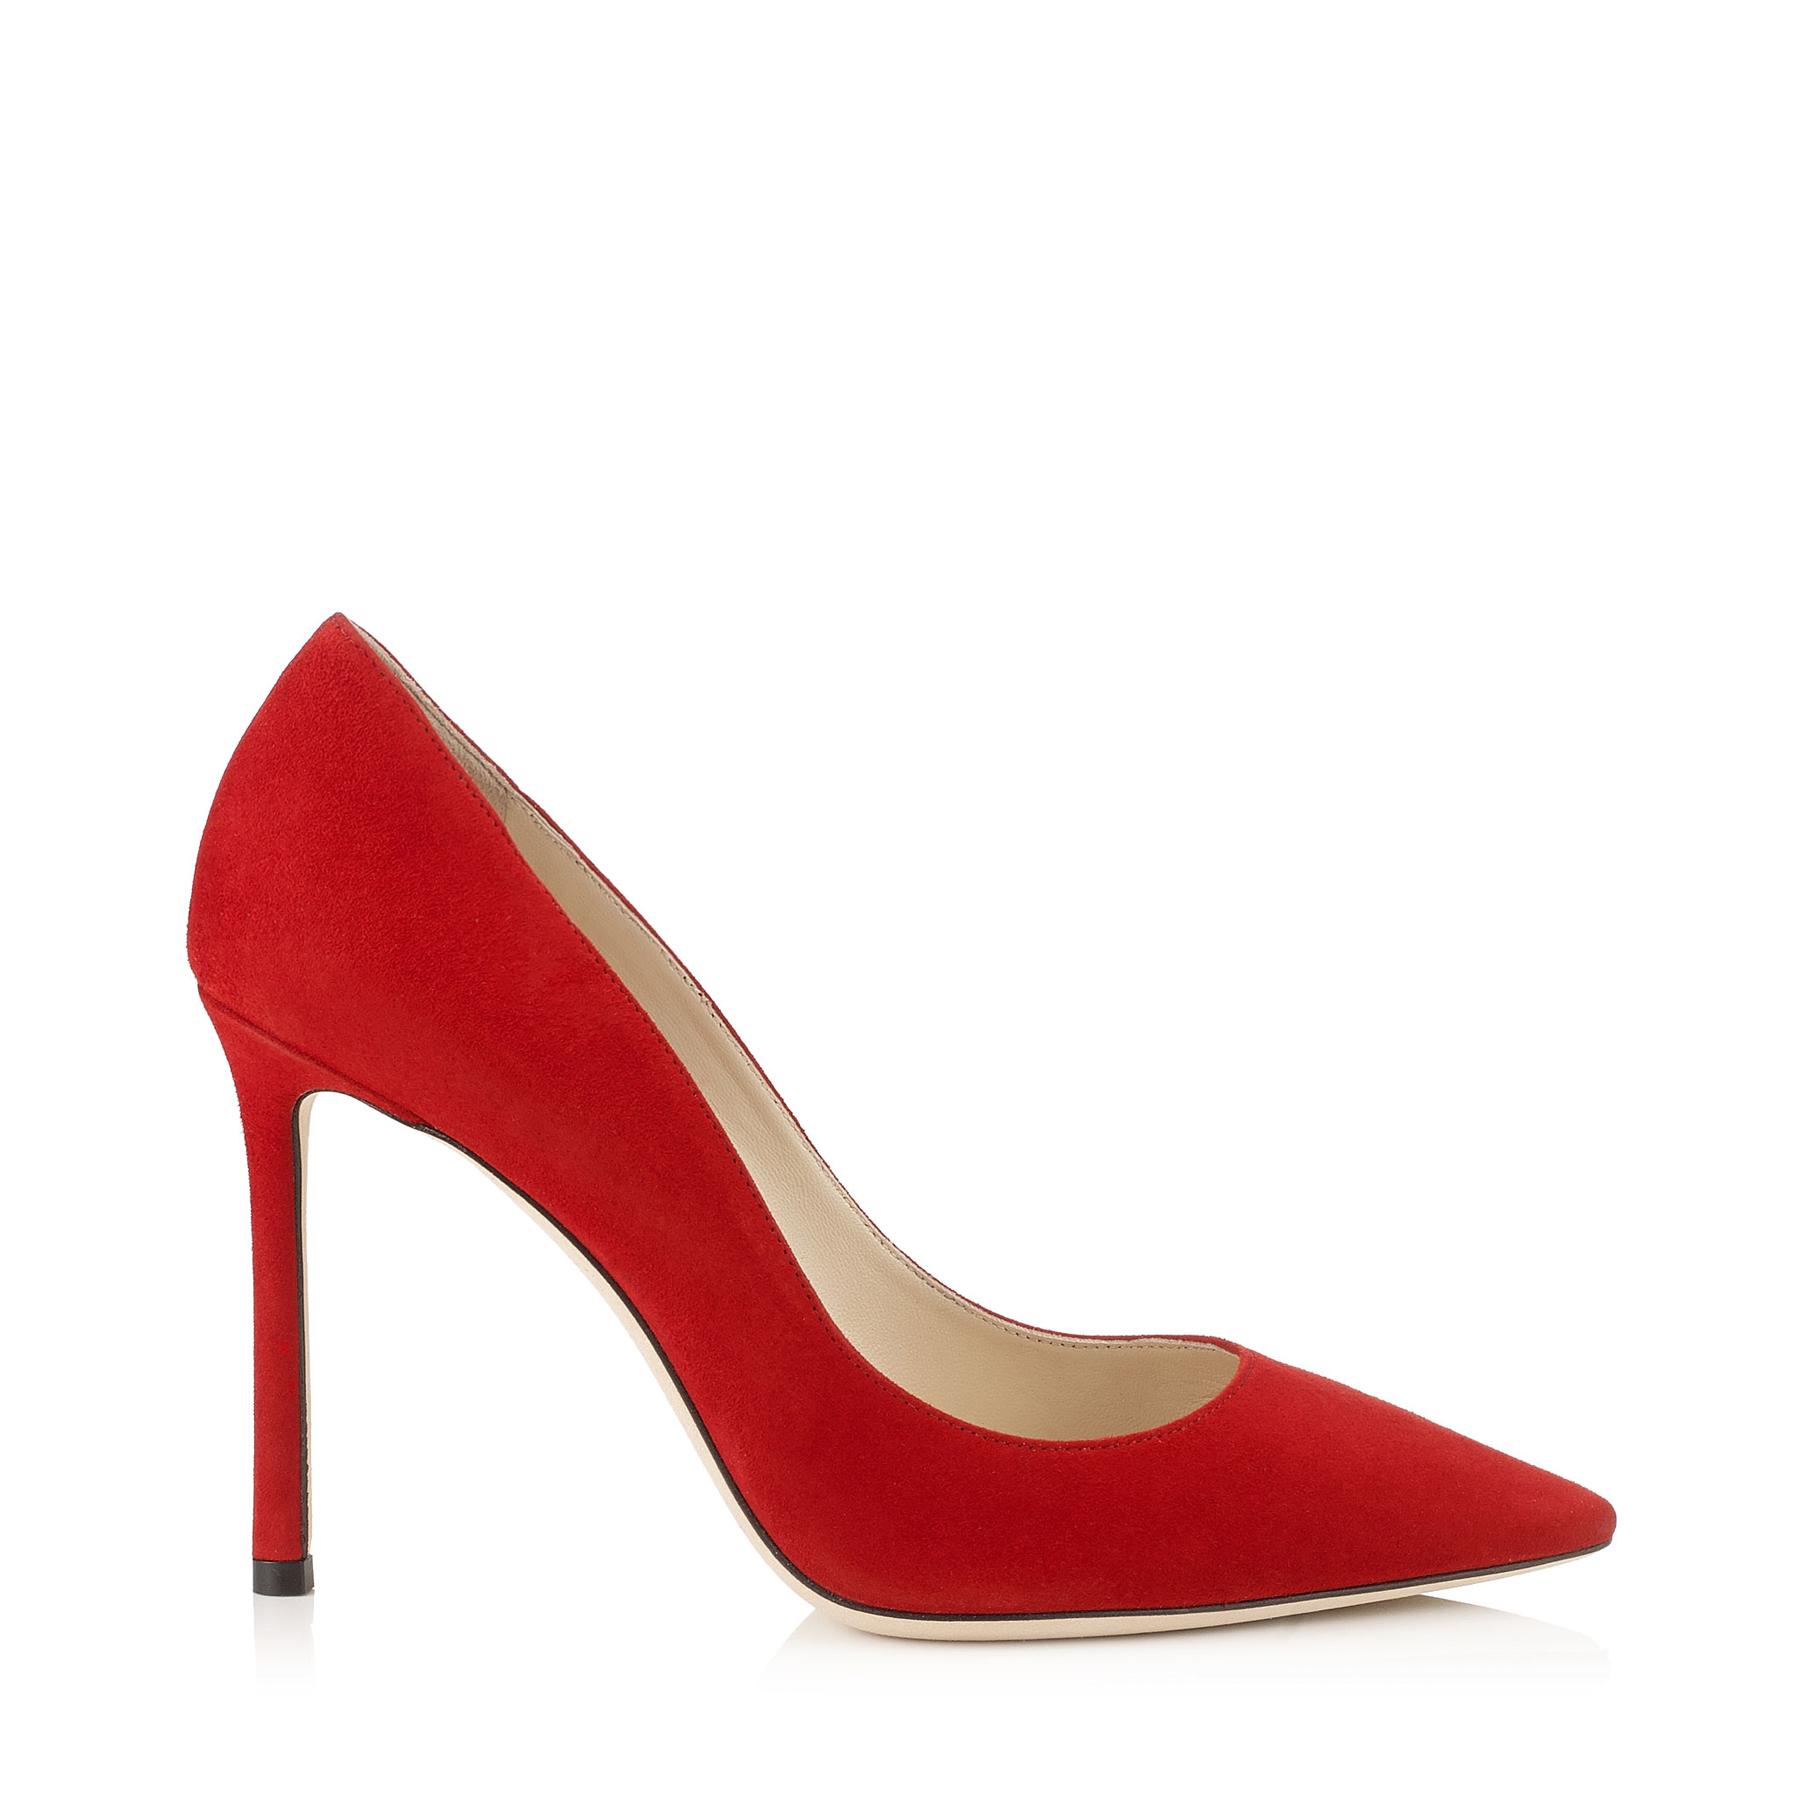 ROMY 100 Red Suede Pointy Toe Pumps by Jimmy Choo